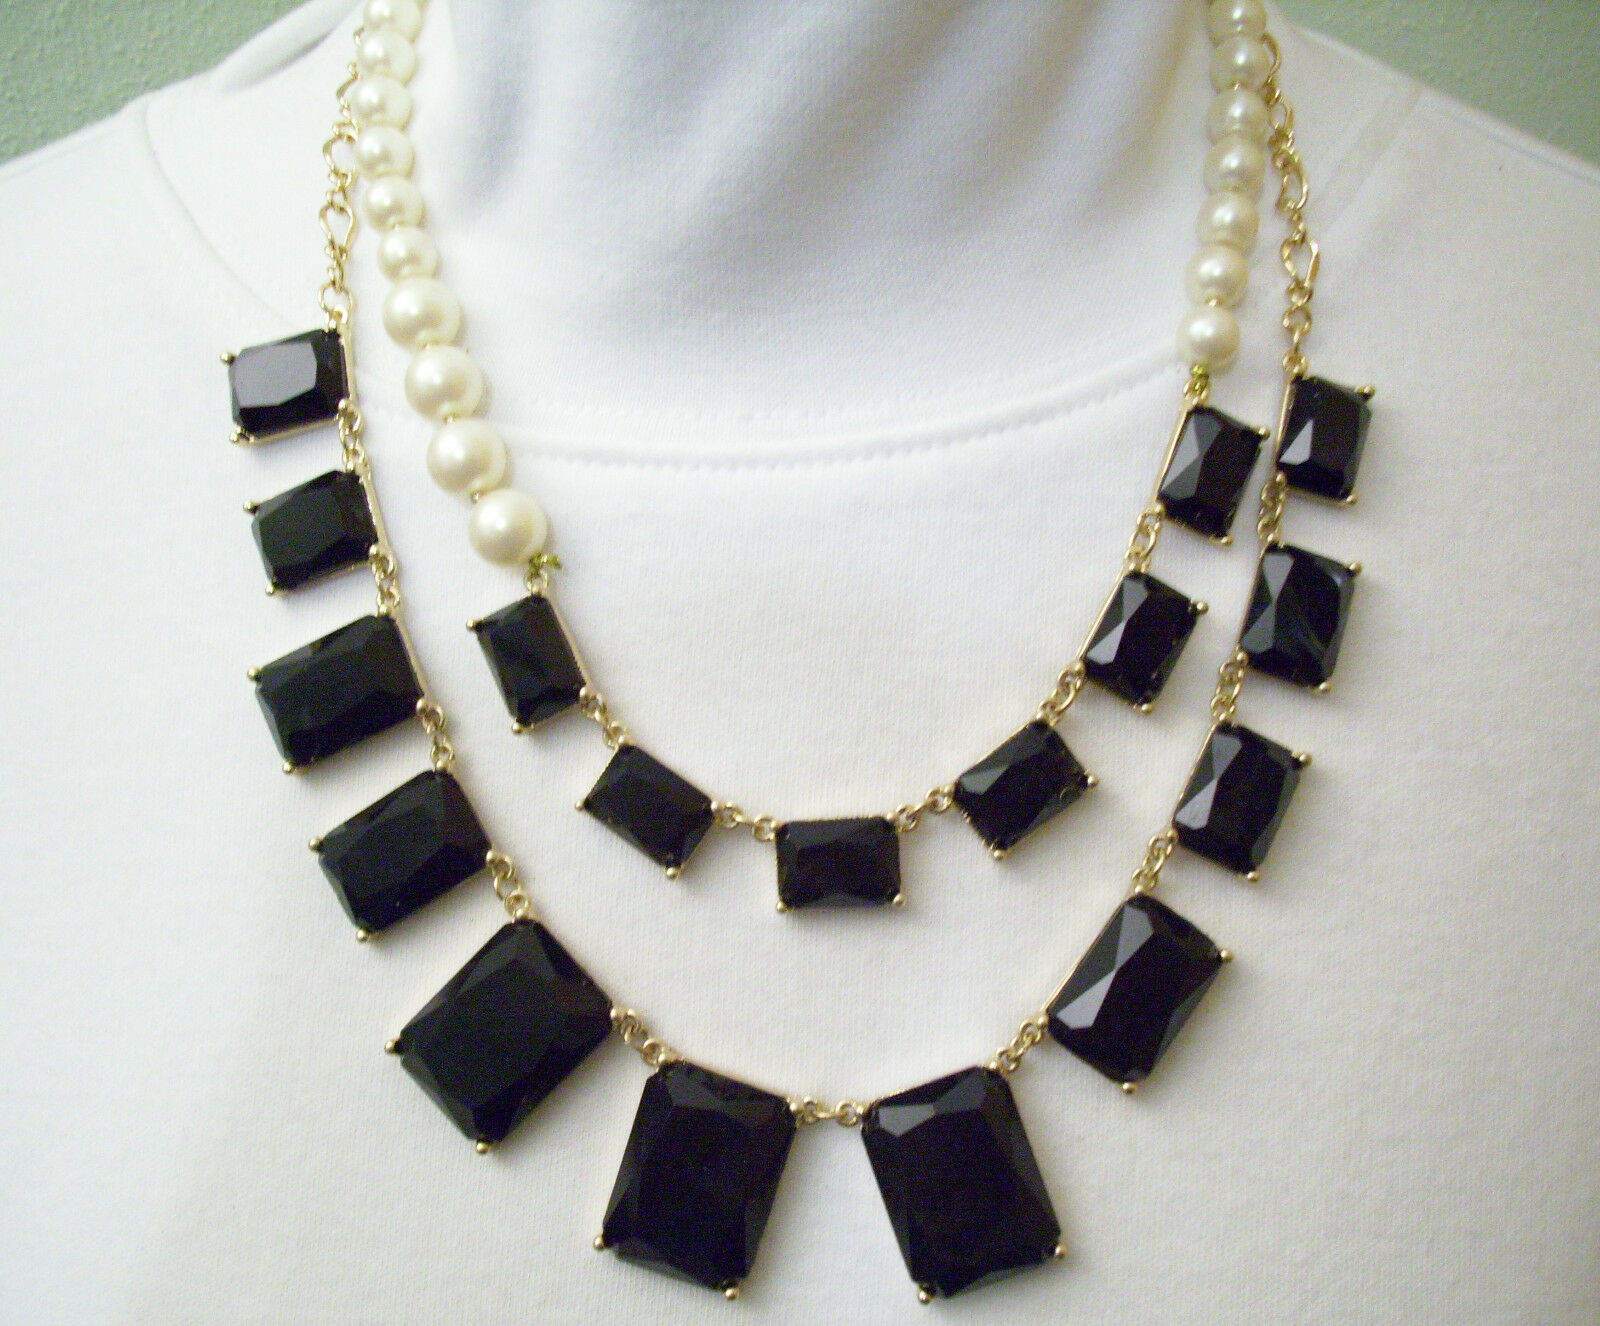 Pearls JET Black Rhinestone DRAMATIC 2 Strand Necklace Chain ASYMMETRICAL Estate